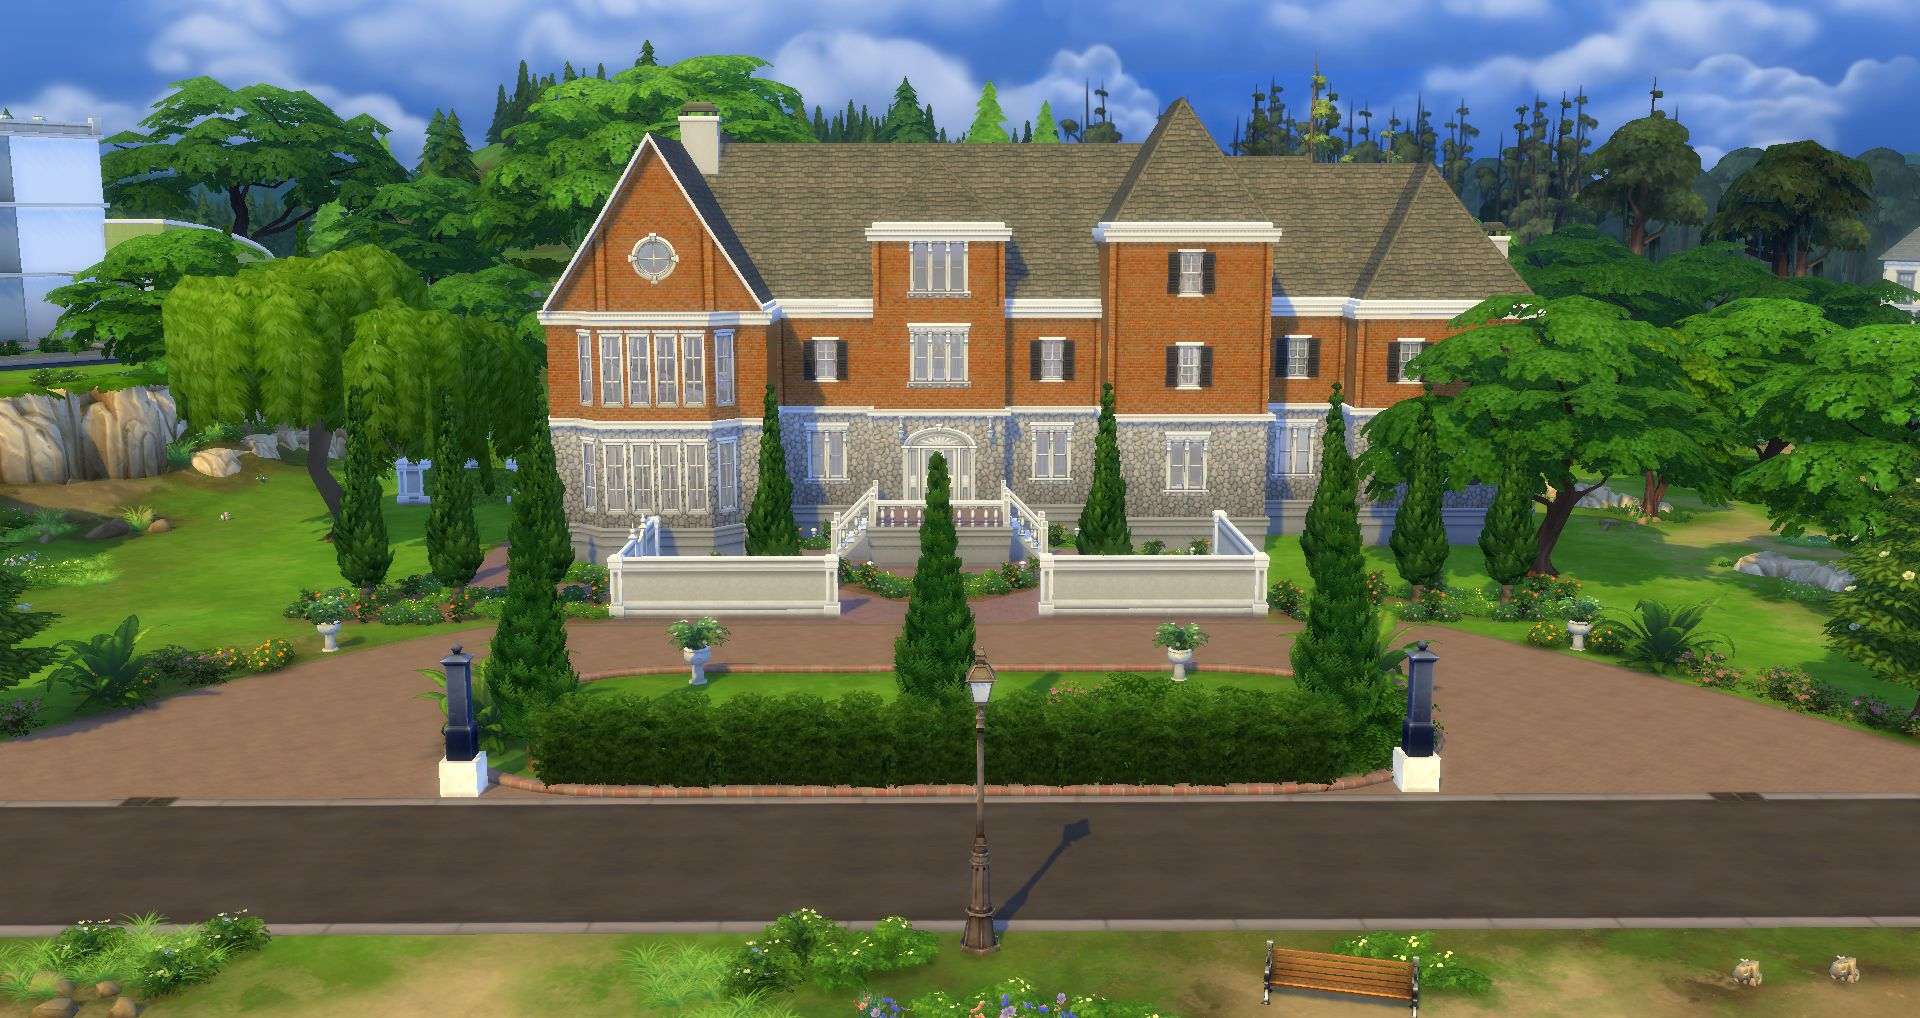 Mod The Sims - [OLD] Chateau du Landgraab for TS4 [remake